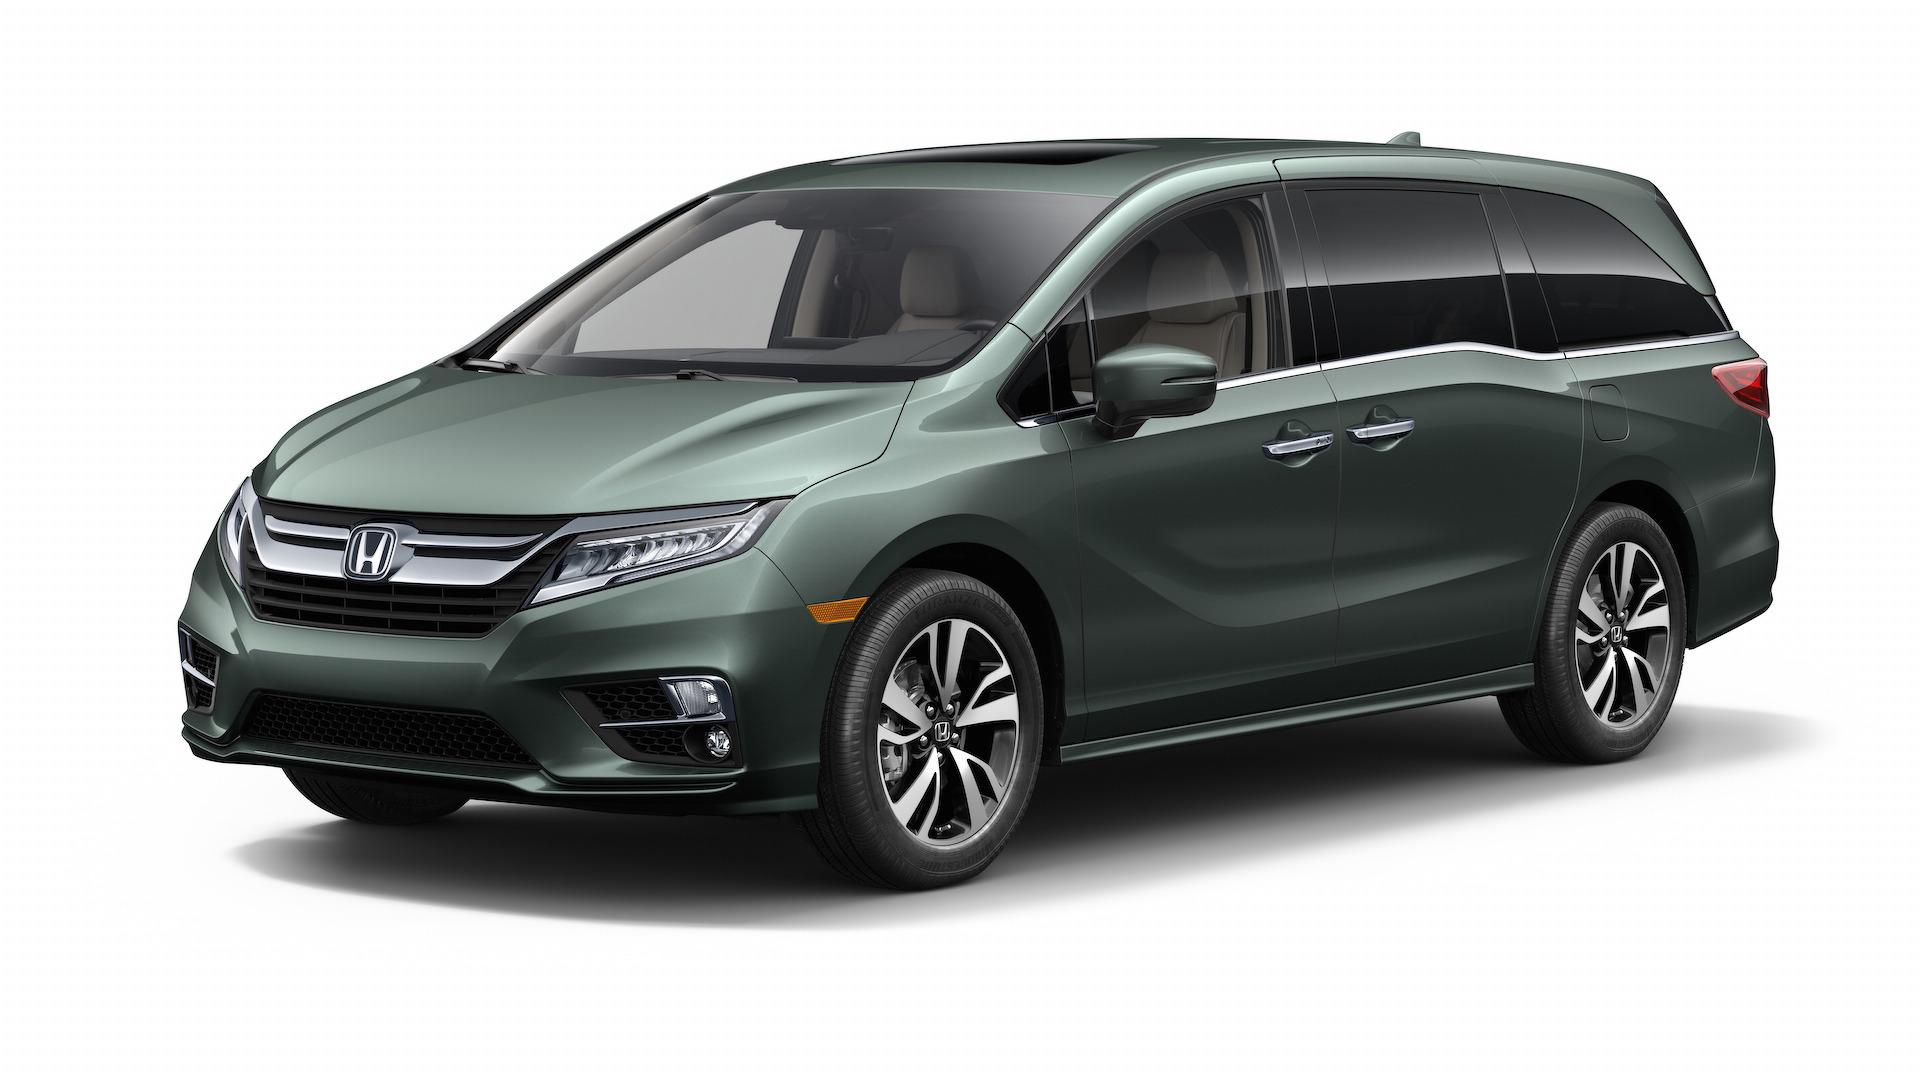 family around insider greatest drove odyssey new review price i my in business its honda the and why discovered minivan made ever